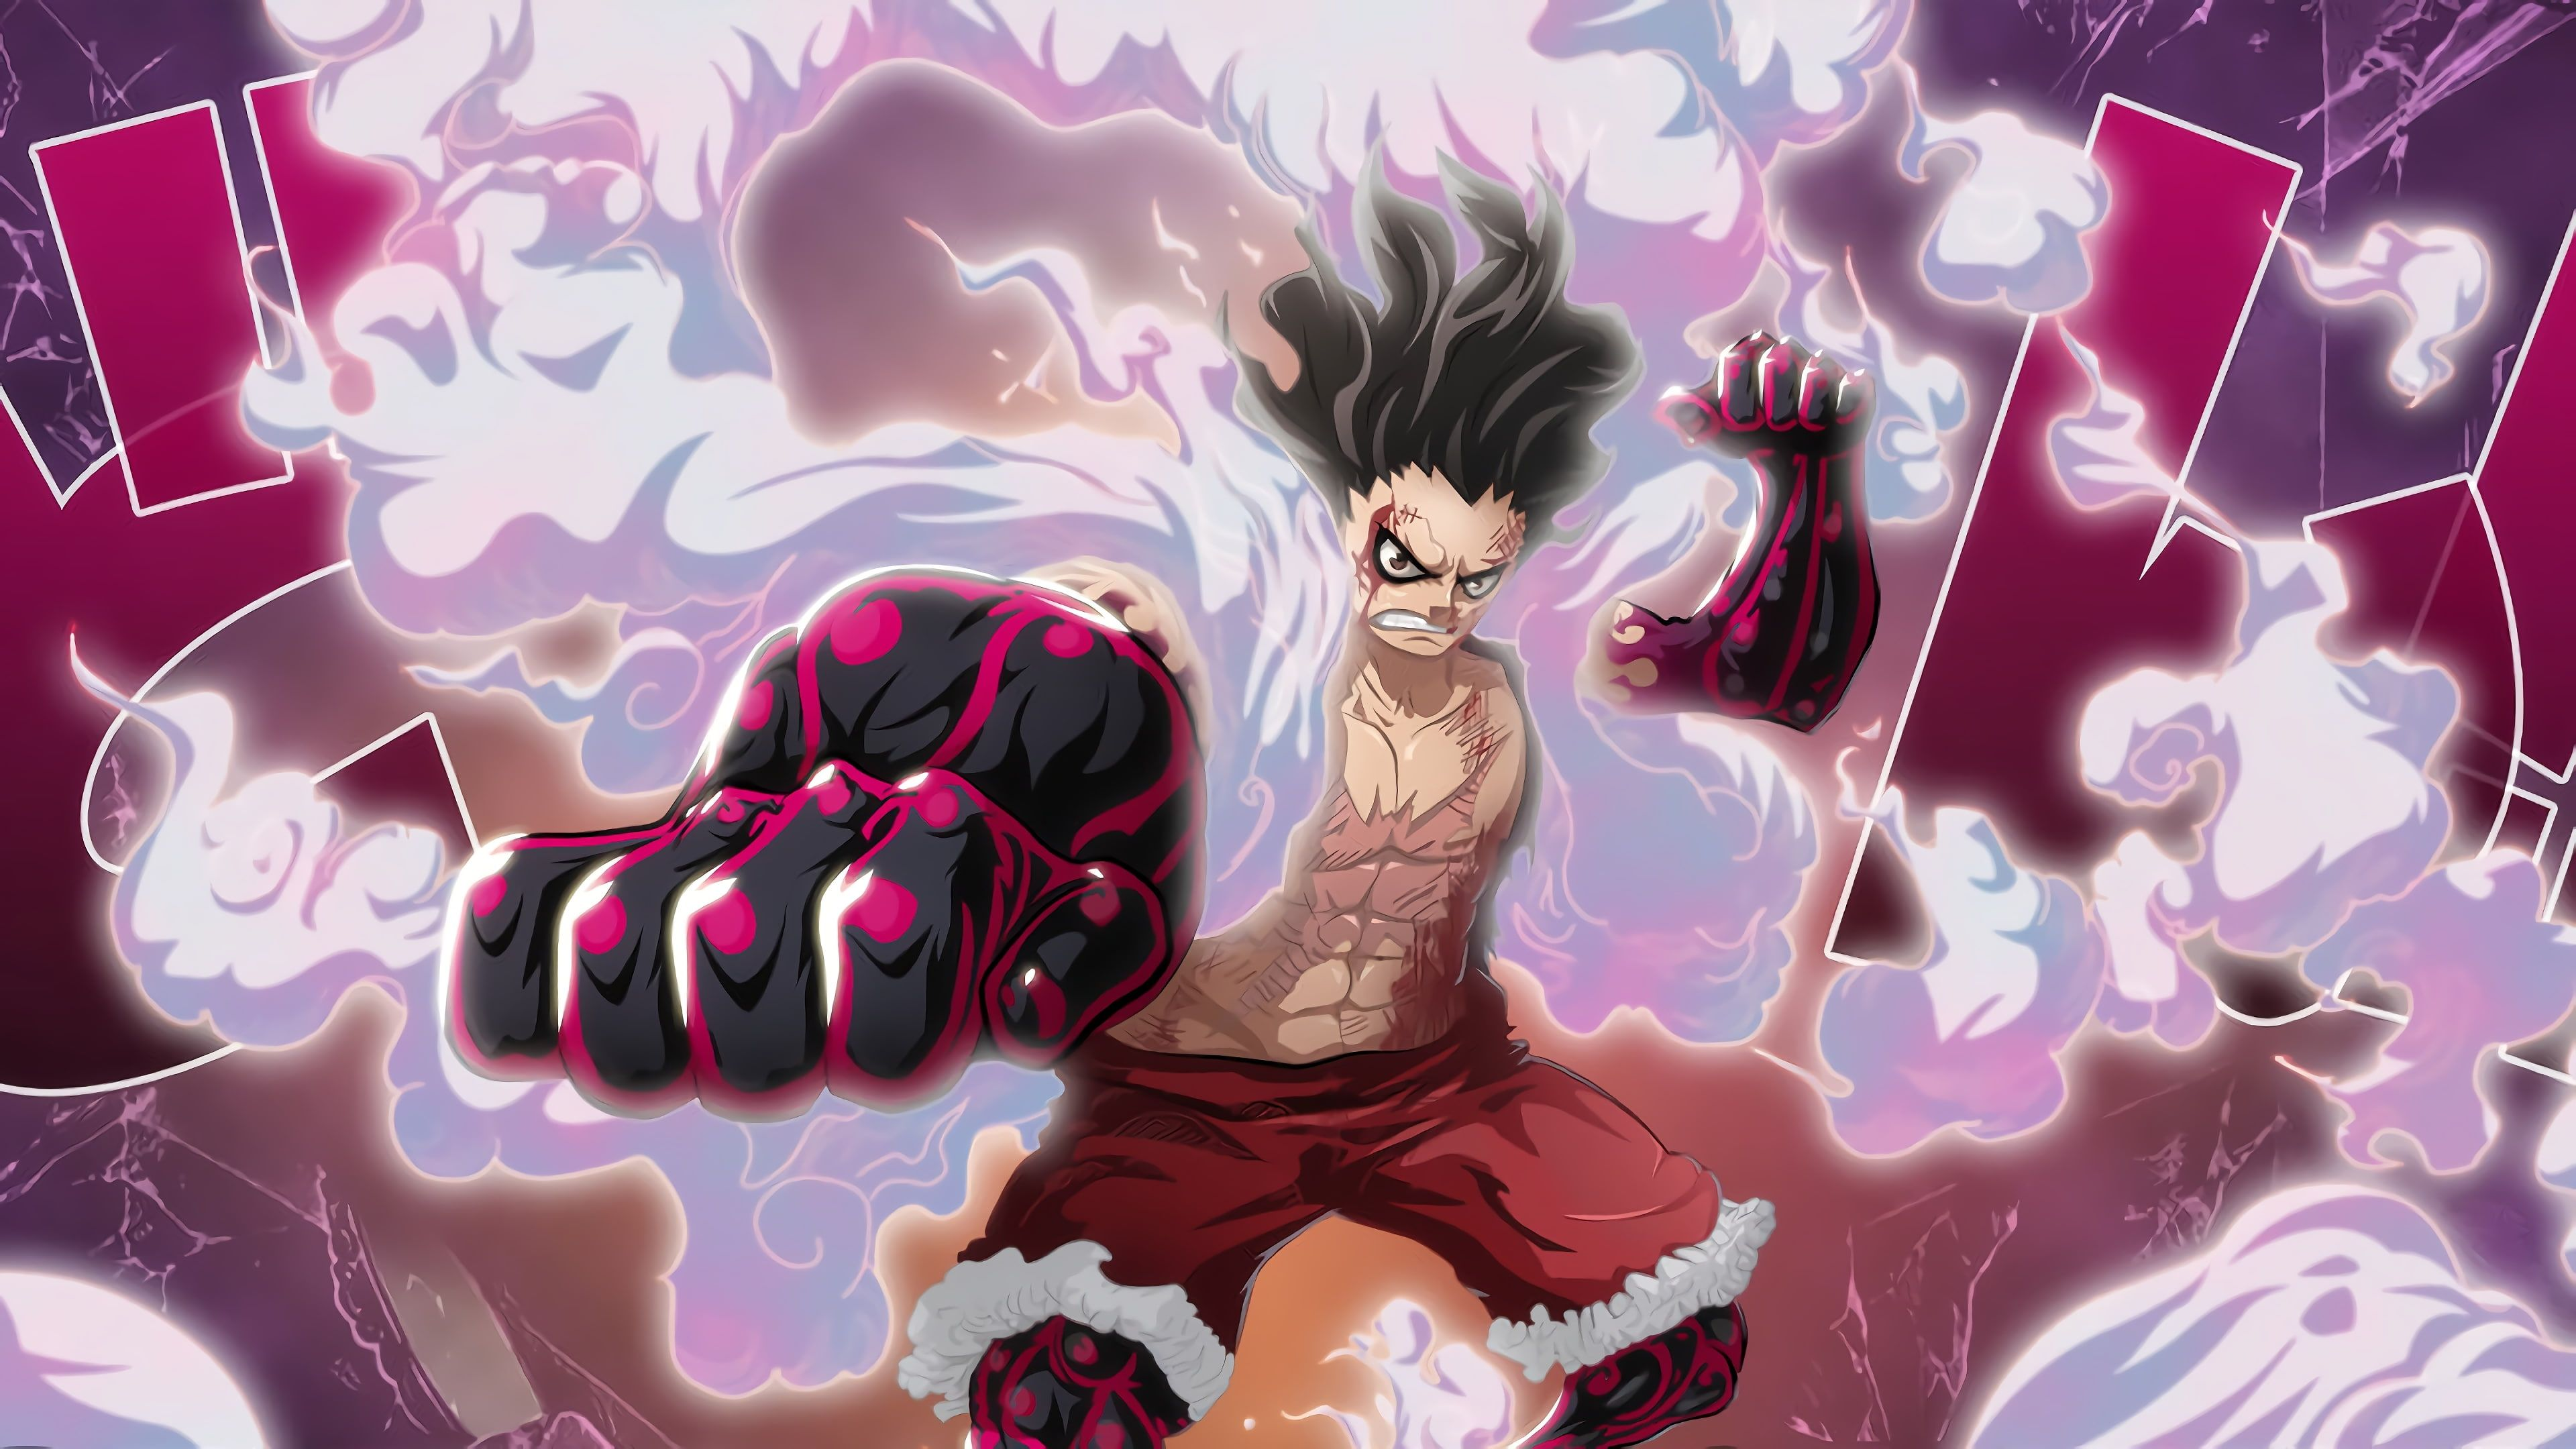 One Piece Monkey D Luffy Gear Fourth Snakeman 4k Wallpaper Hdwallpaper Desktop Luffy Gear Fourth Luffy Anime